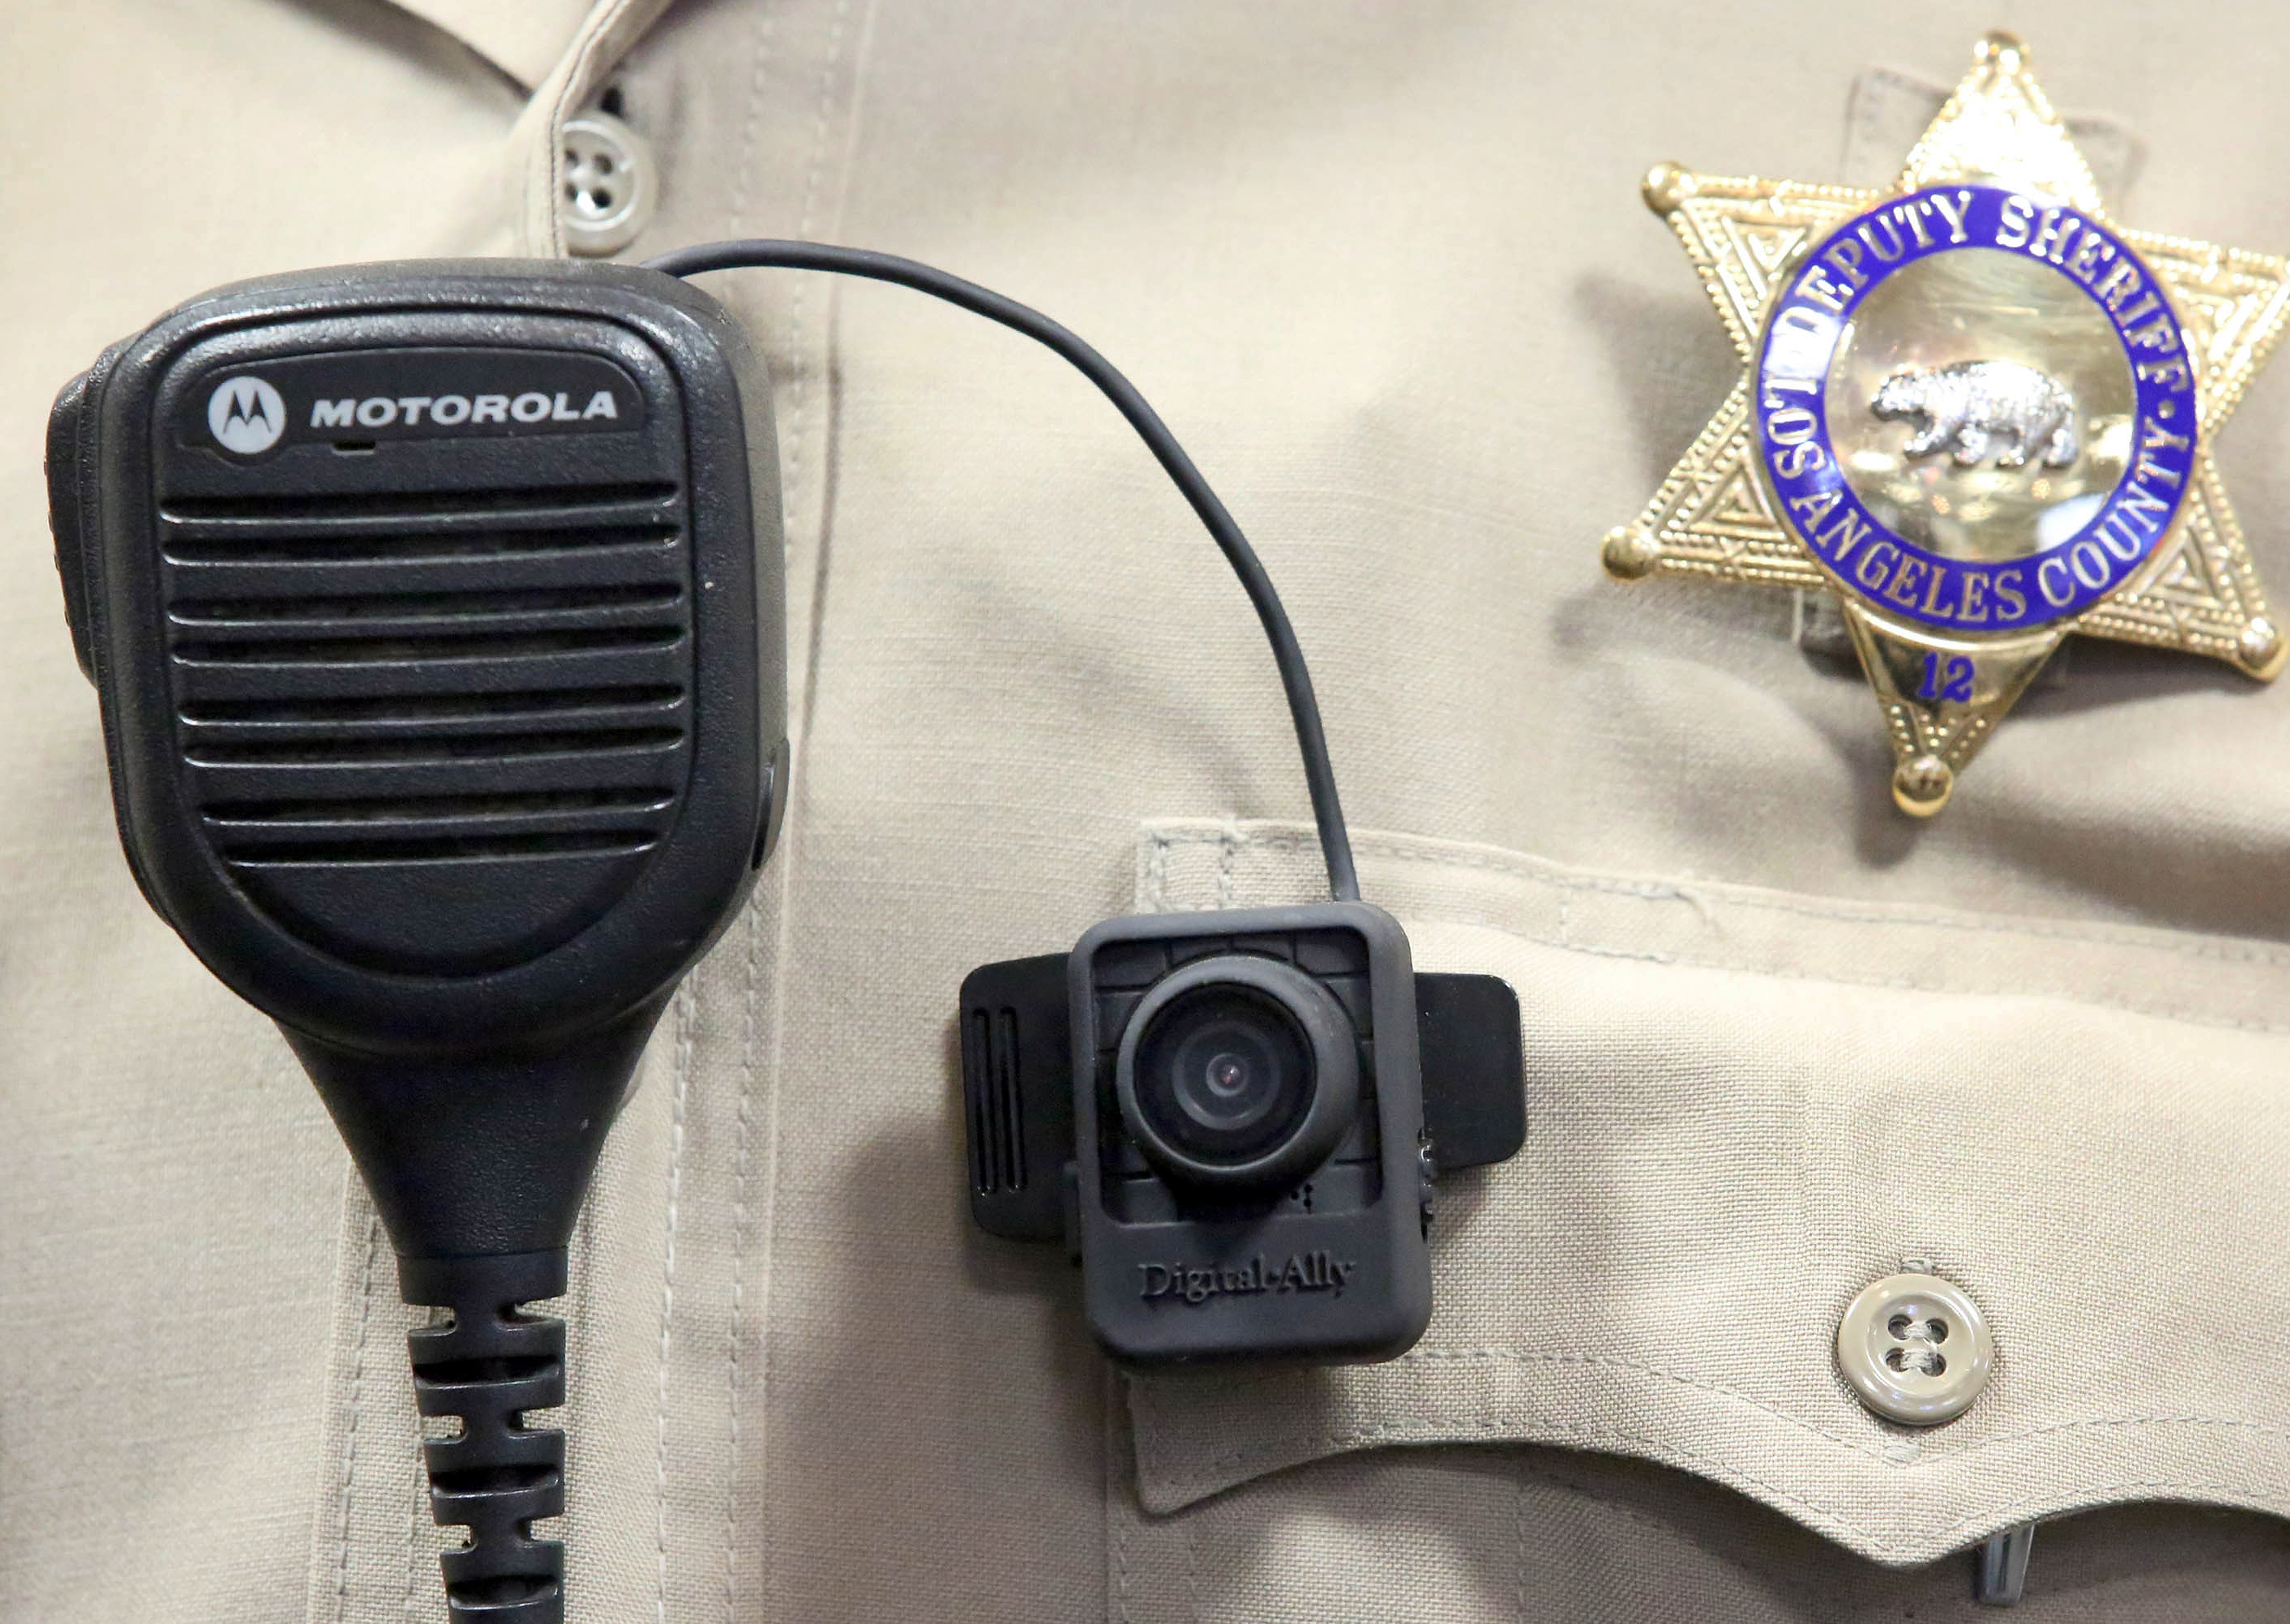 A body camera is displayed at a news conference at the Sheriff's Headquarters in the Monterey Park section of Los Angeles on Sept. 22, 2014.